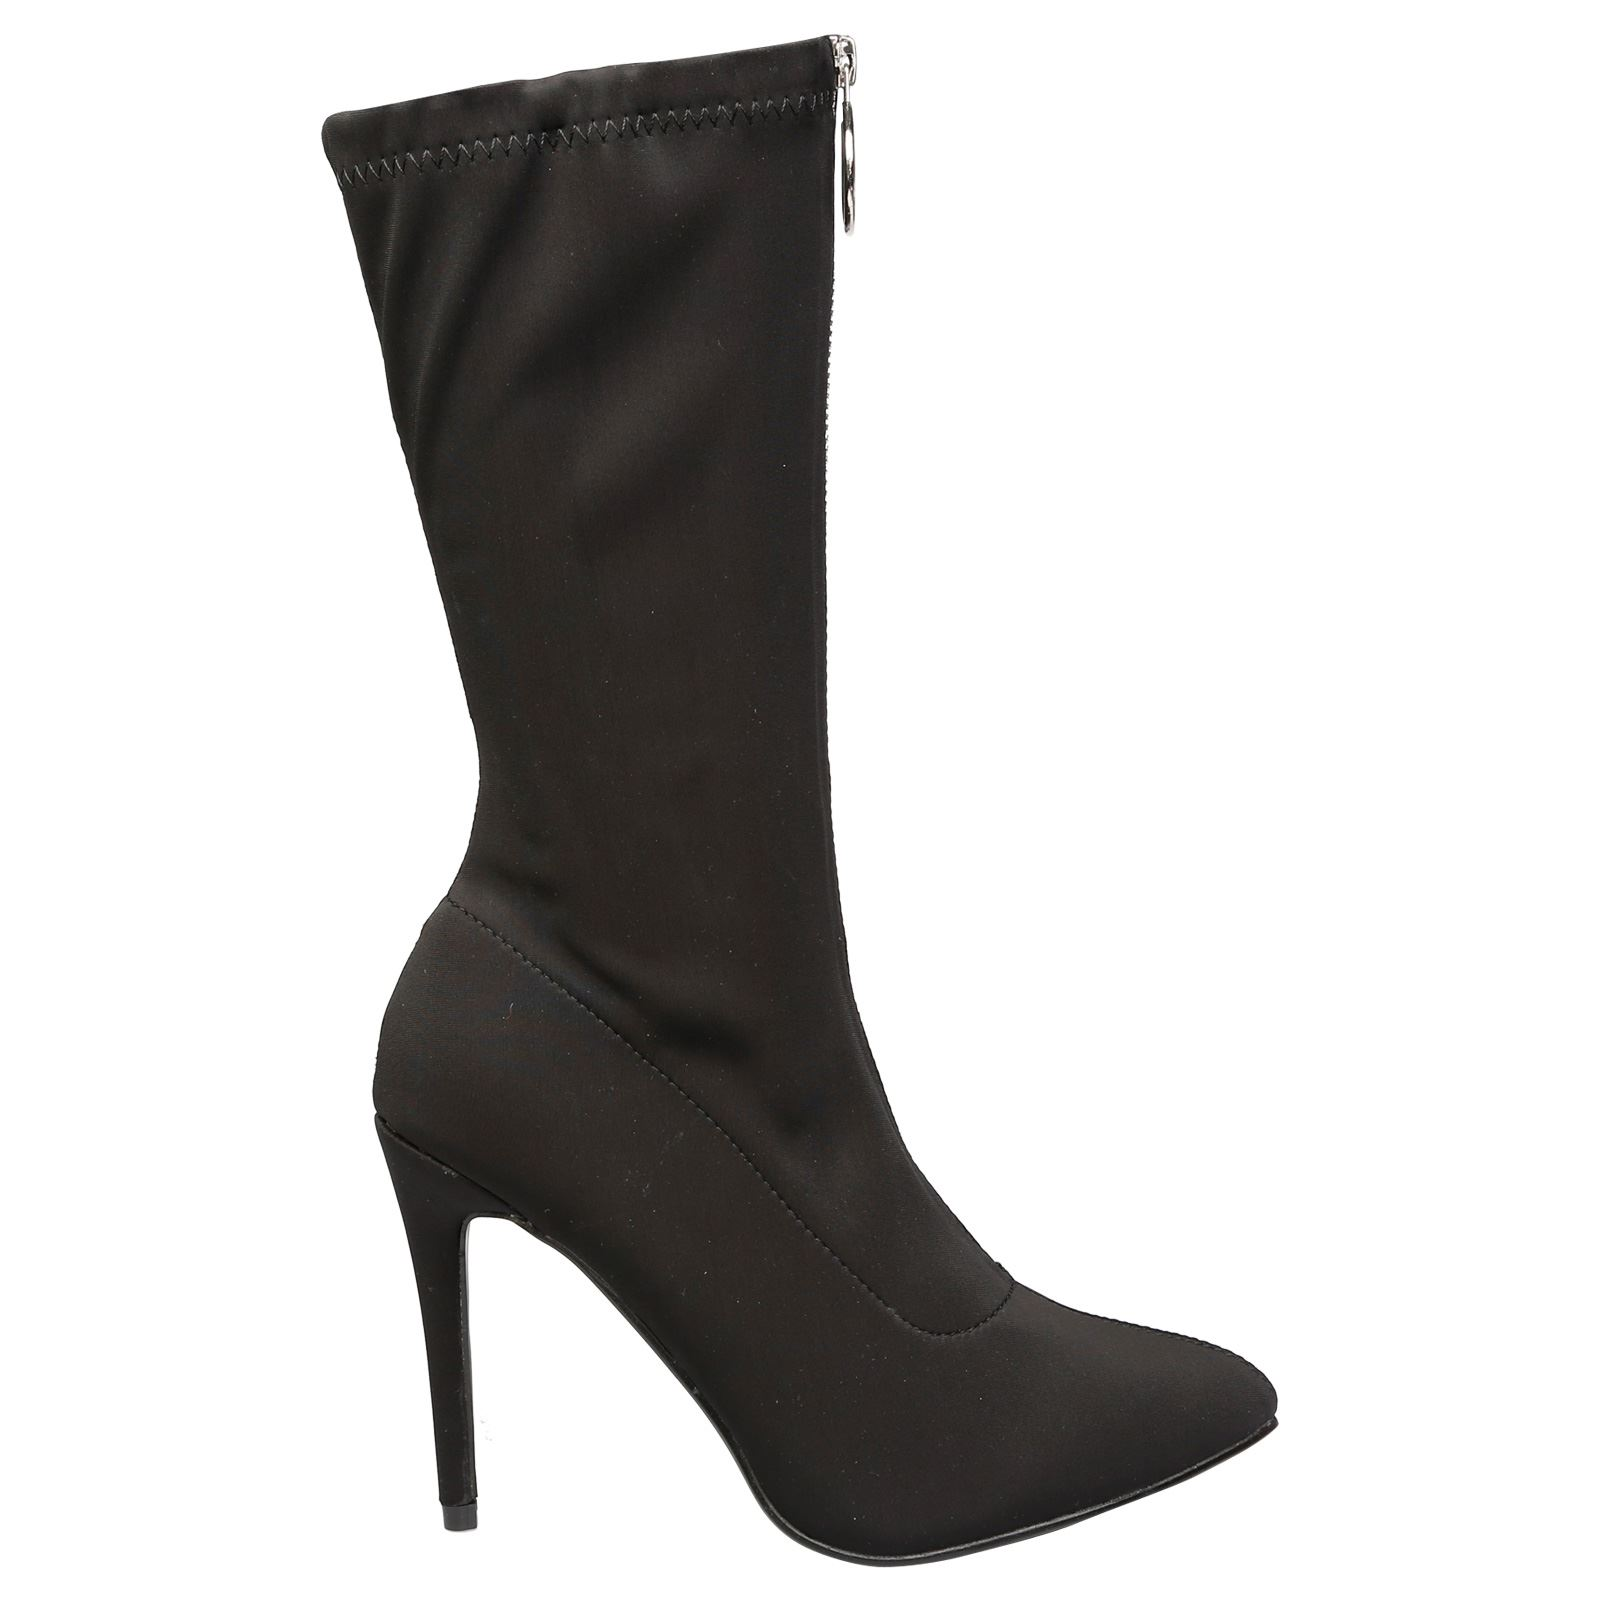 Cynthia Womens Stilleto Heel Zip Up Pointed Toe Mid Calf Boots Ladies Shoes Size